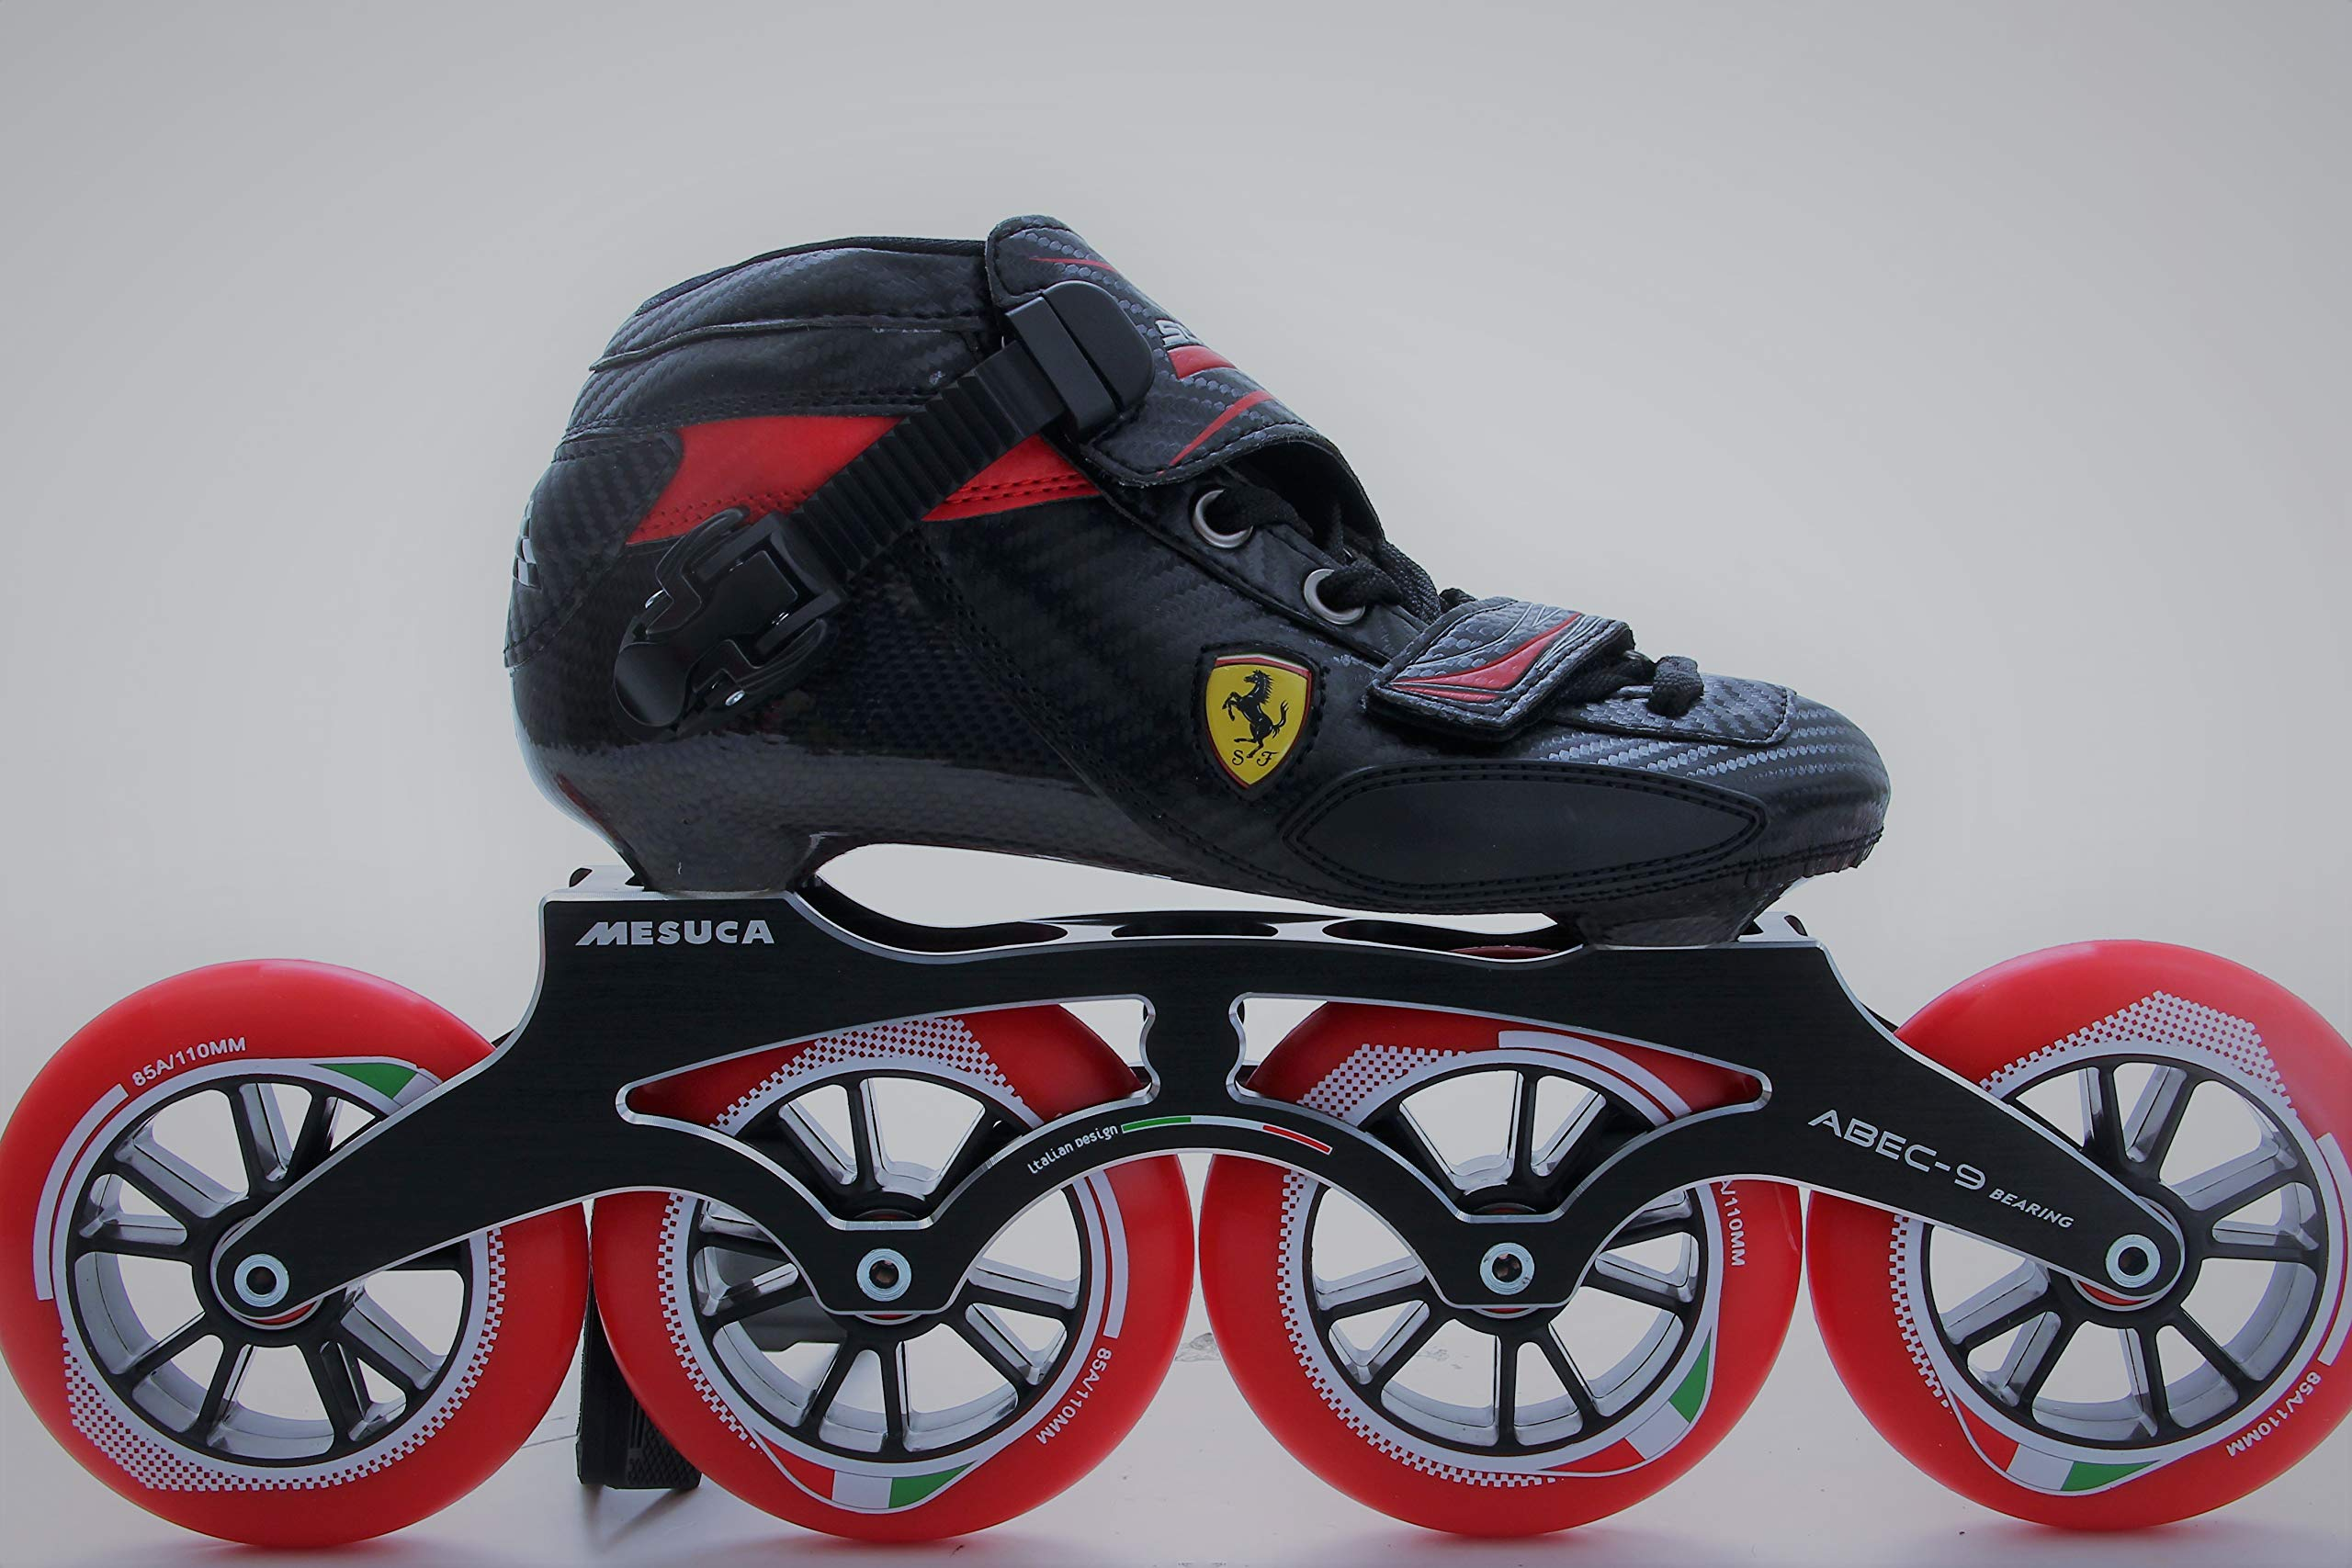 Ferrari Pro Speed Skates Adult Size 11